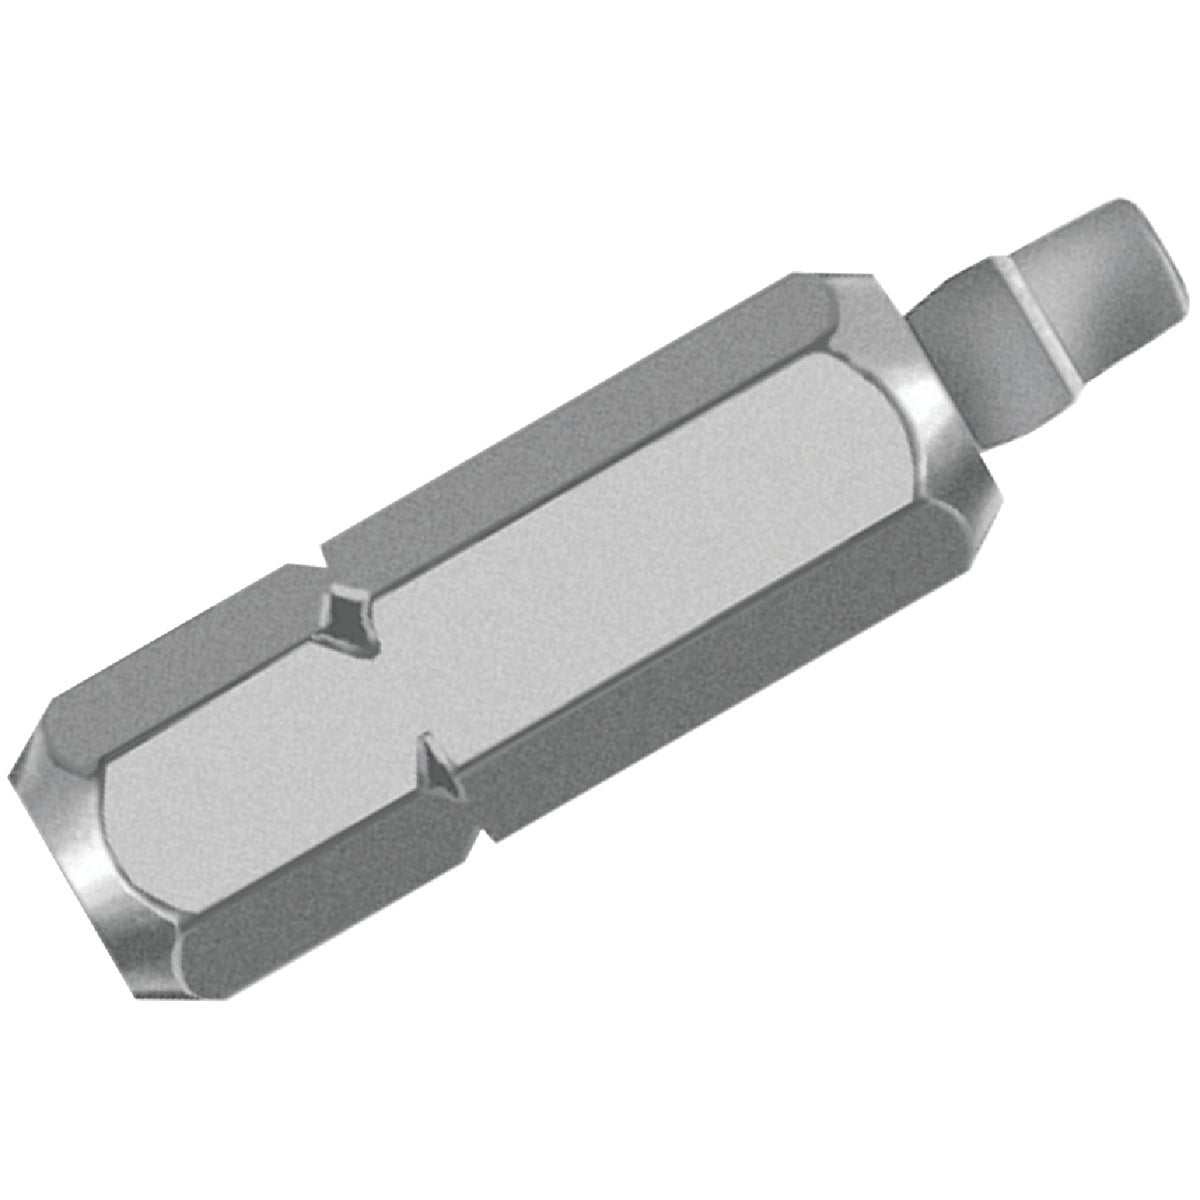 "#2 1"" SQUARE RECESS BIT - 92225 by Irwin Industr Tool"